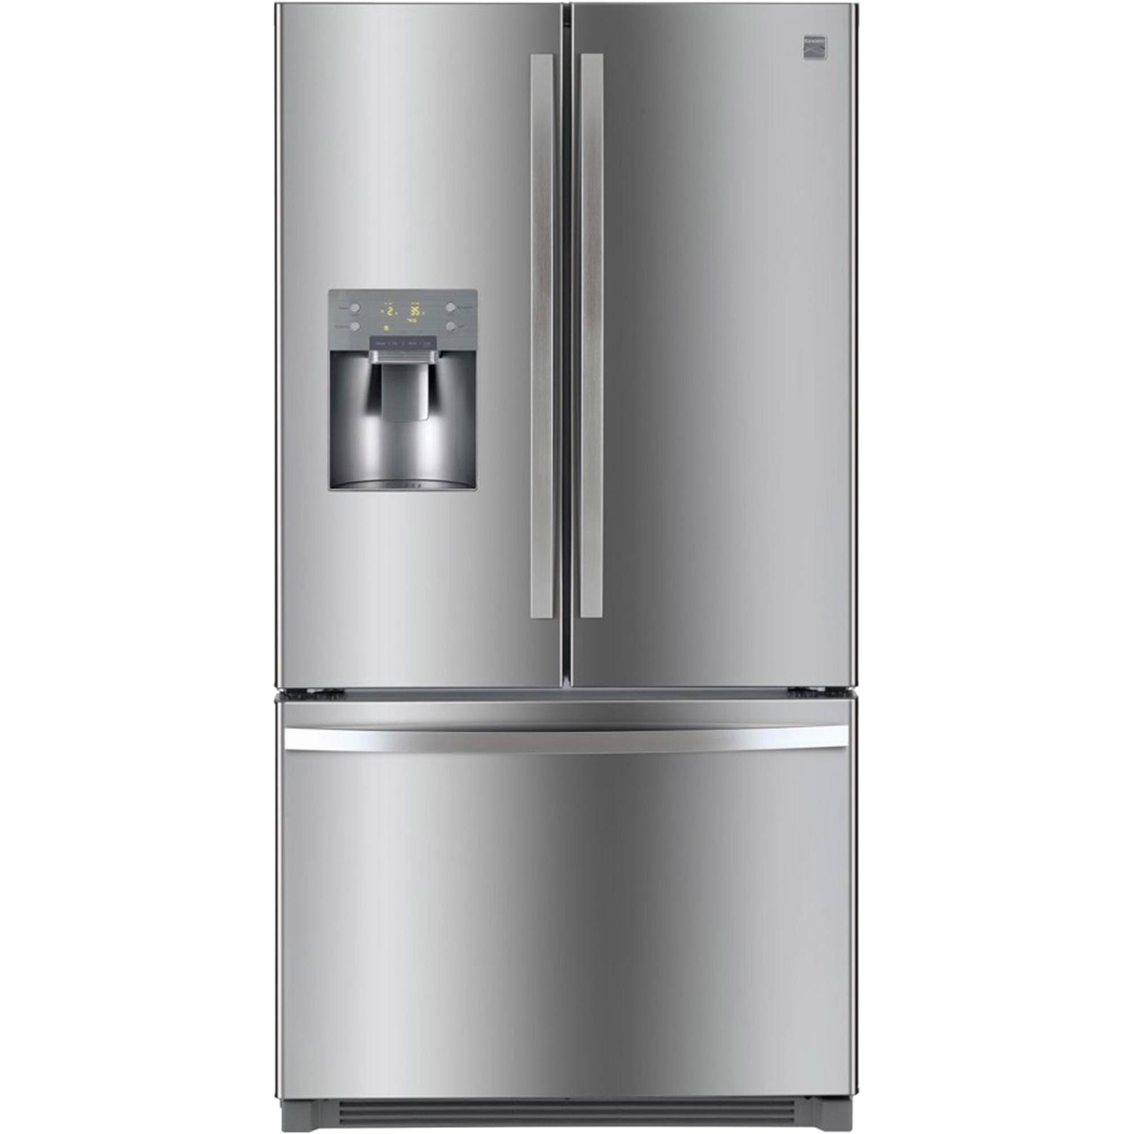 kenmore black refrigerator. kenmore 25.6 cu. ft. french door stainless steel refrigerator with bottom freezer black